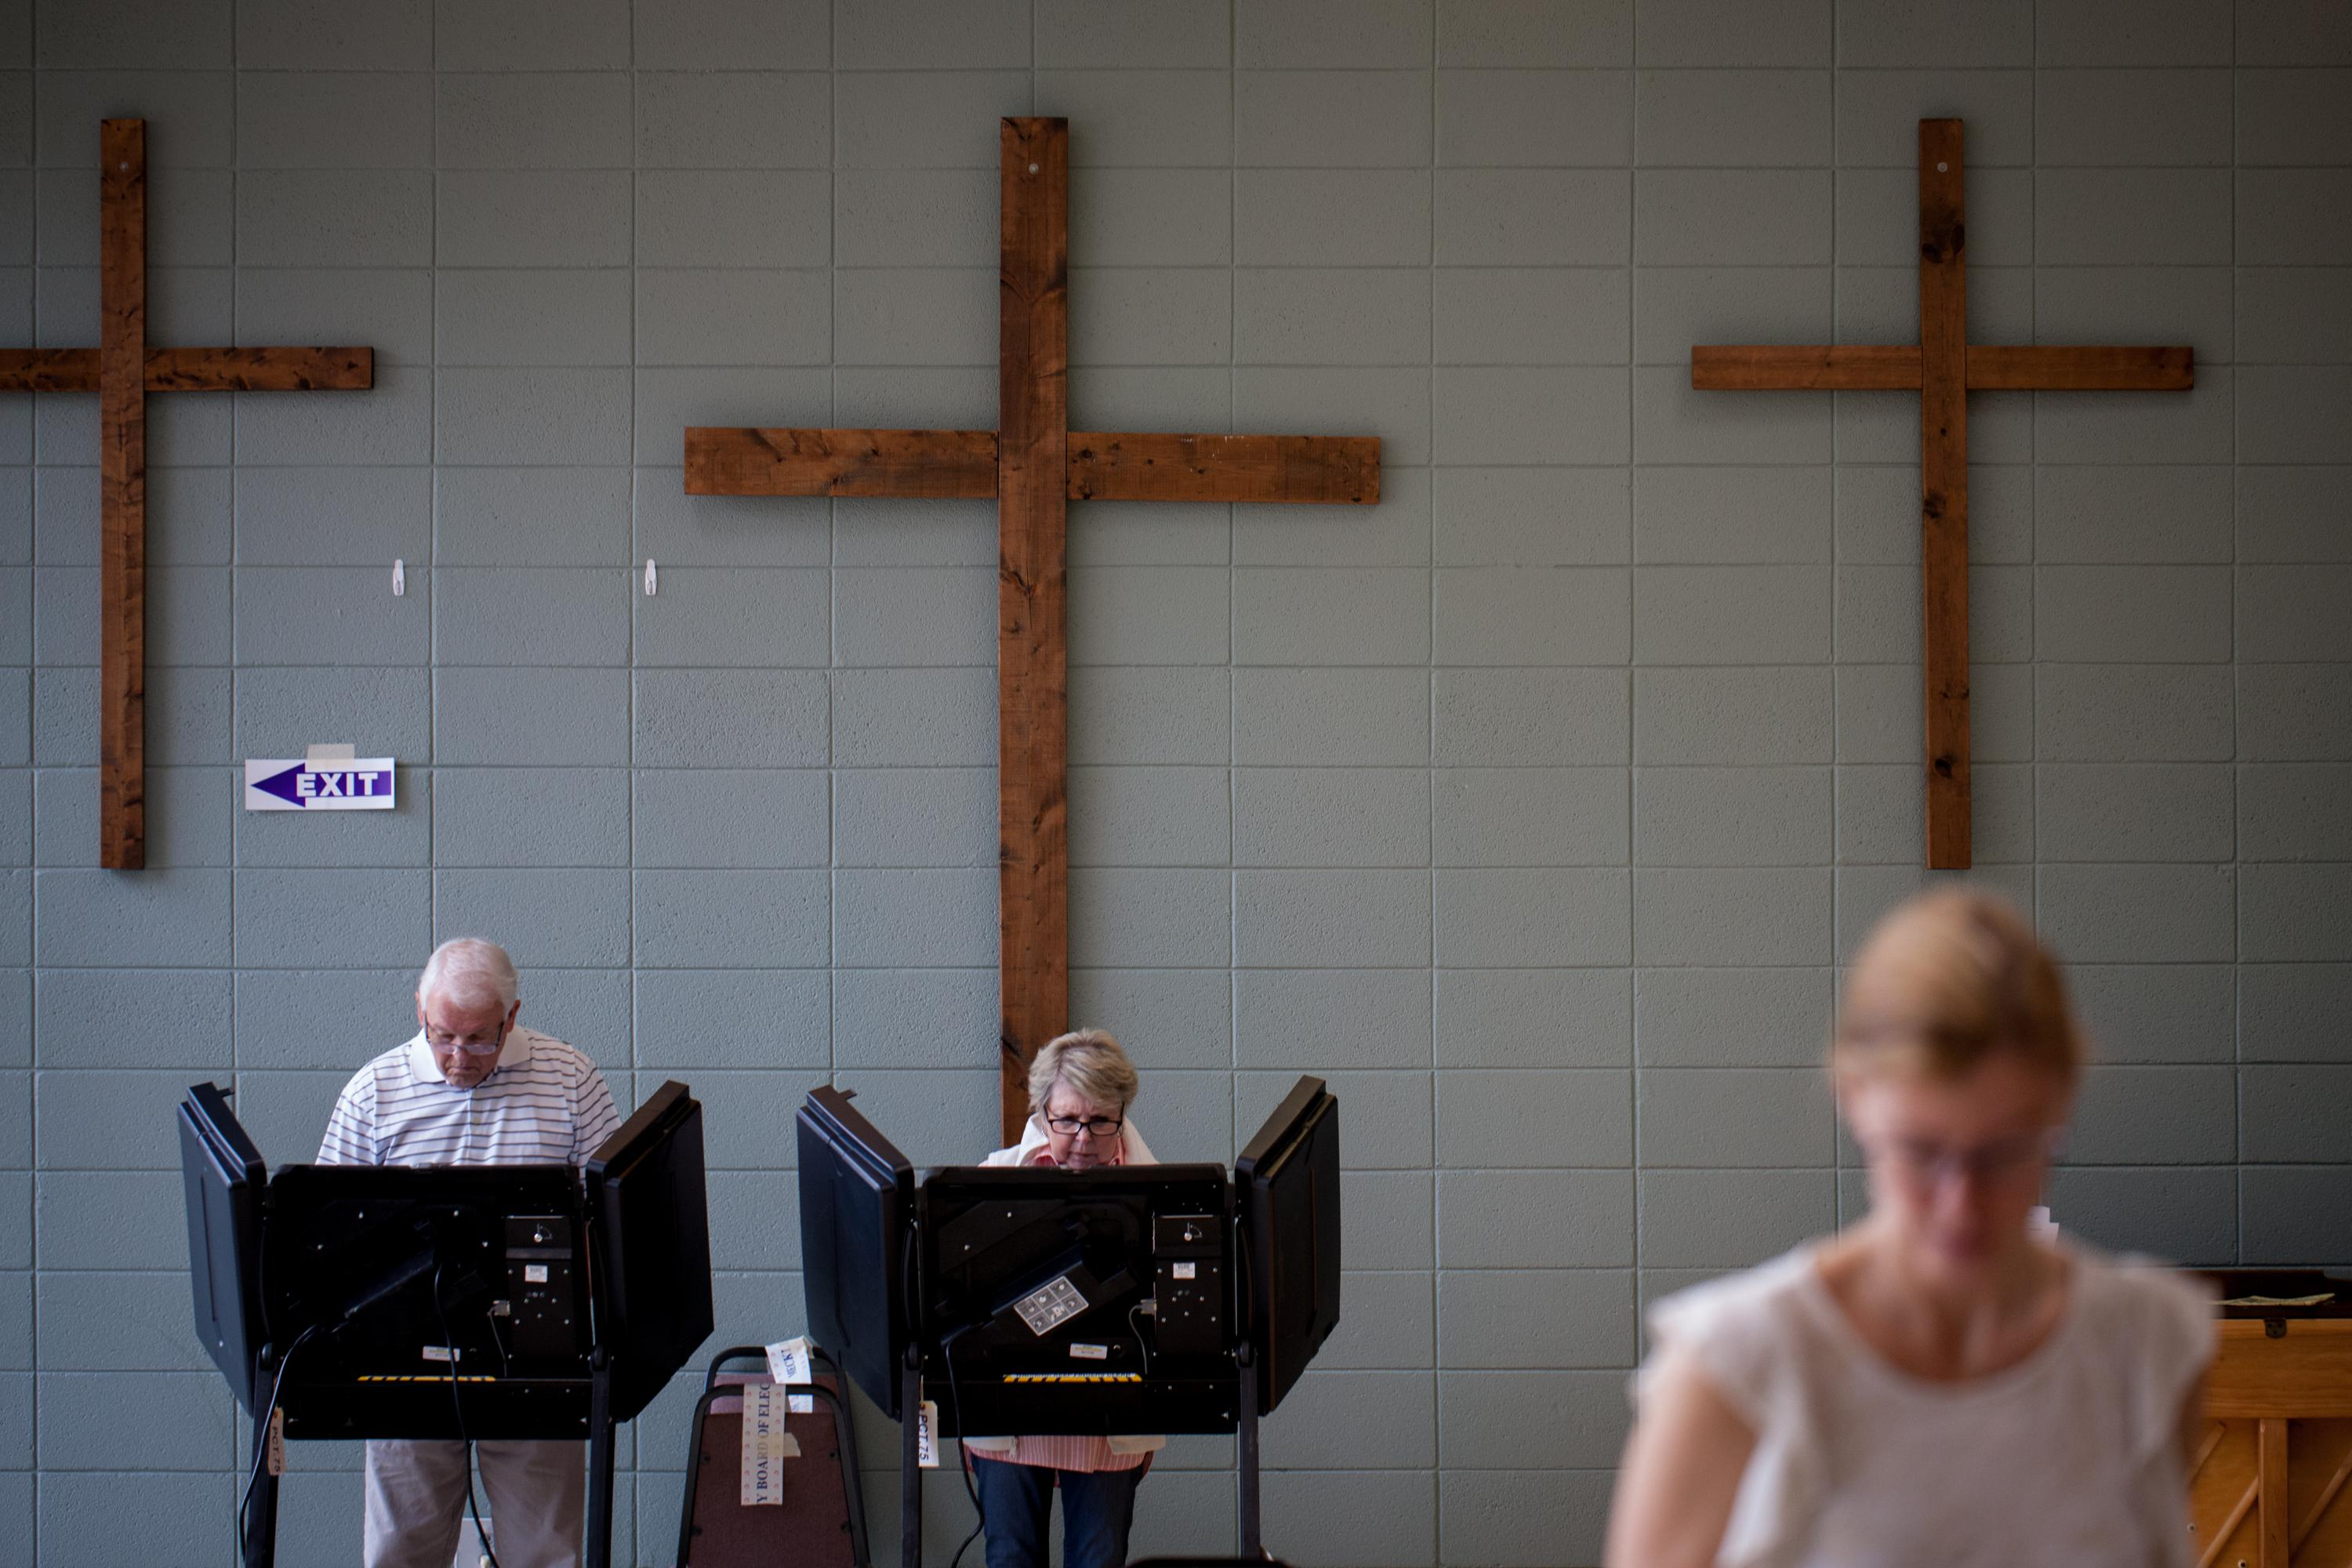 Two people at voting booths. Three Christian crosses hang on the wall behind them.